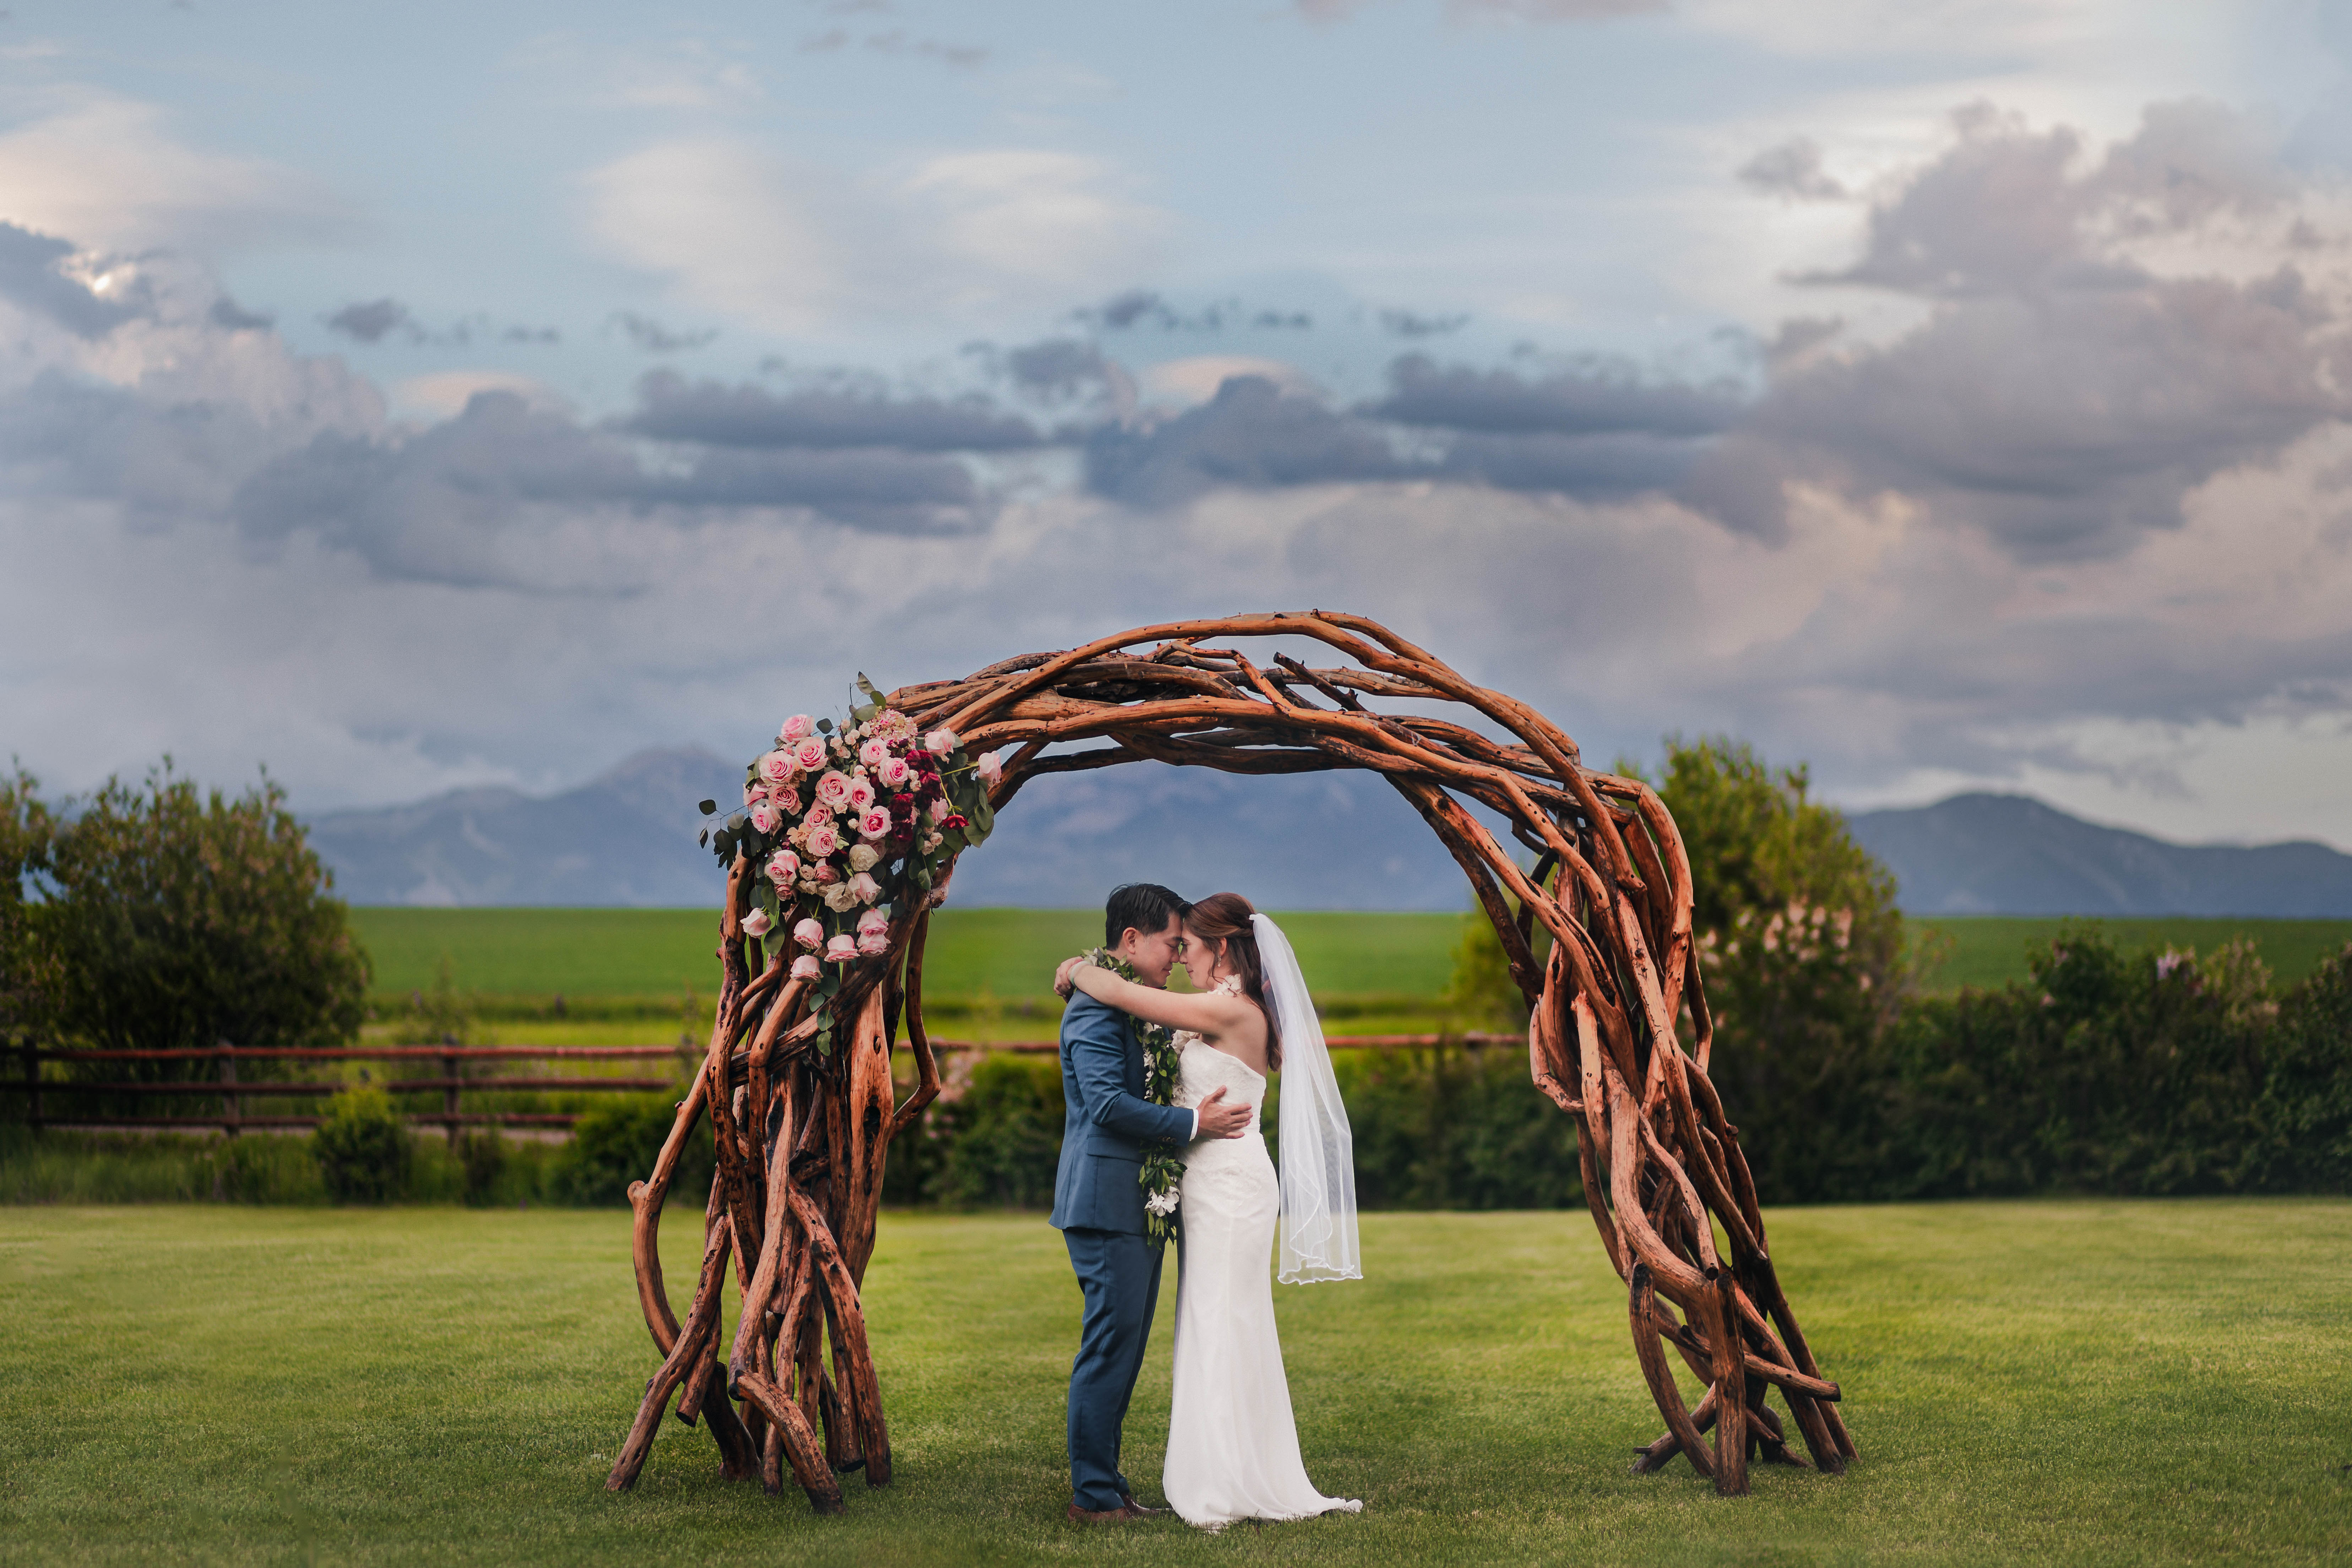 couple-under-arbor-of-branches-with-roses-adventure-wedding-photography